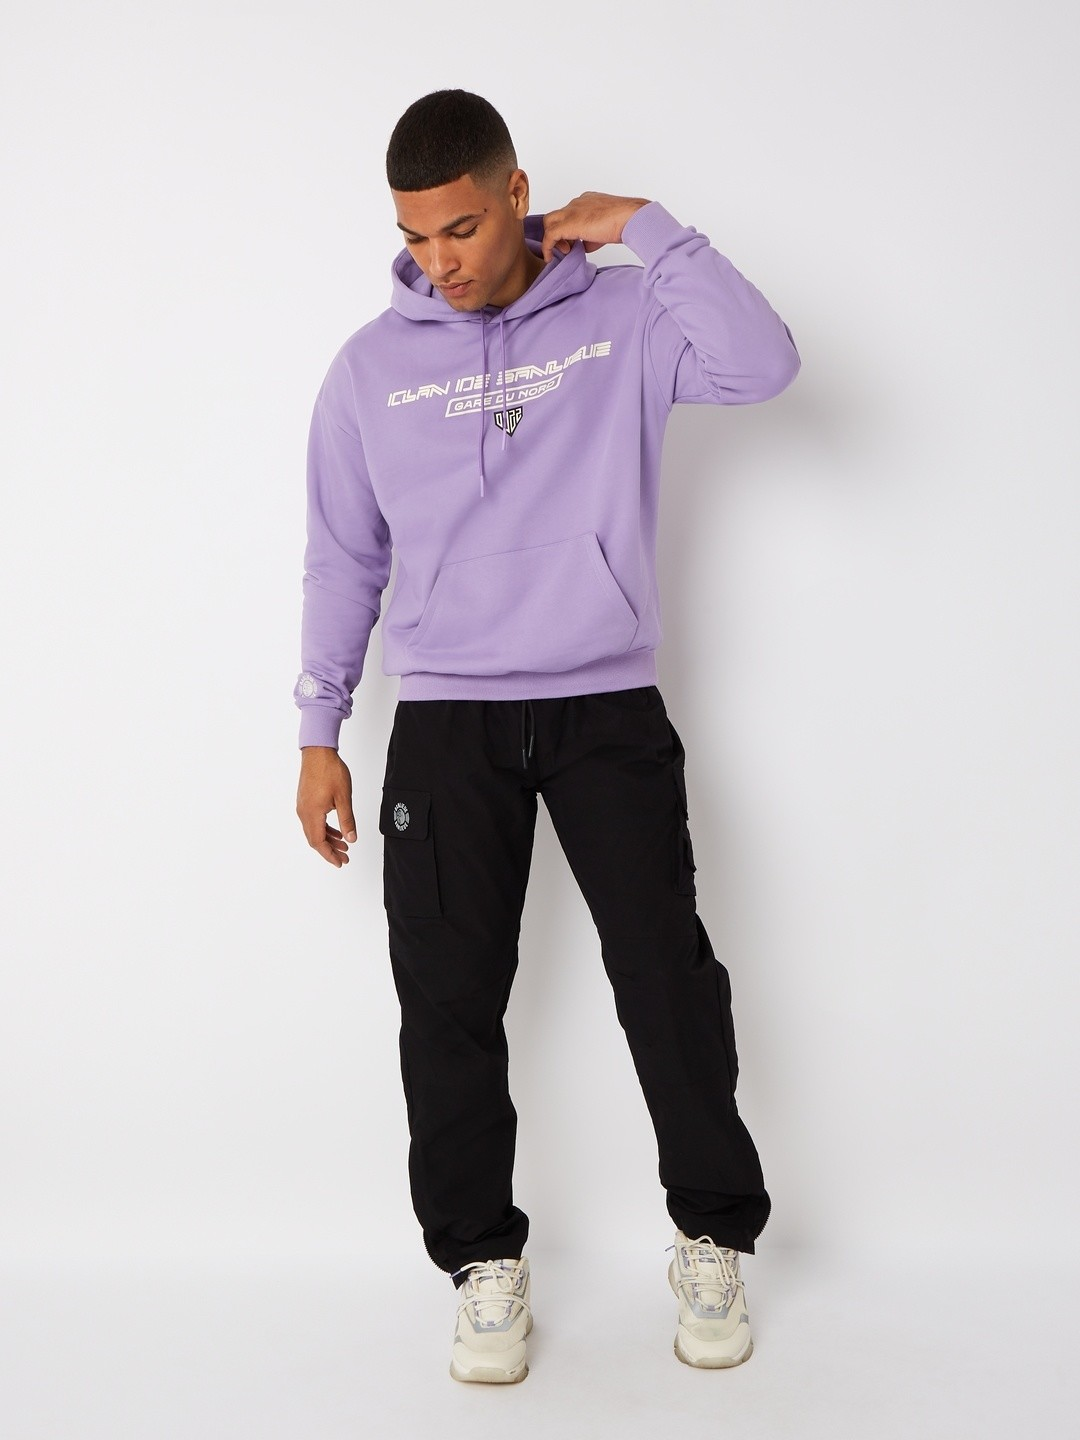 GARE DU NORD HOODIE LILAC